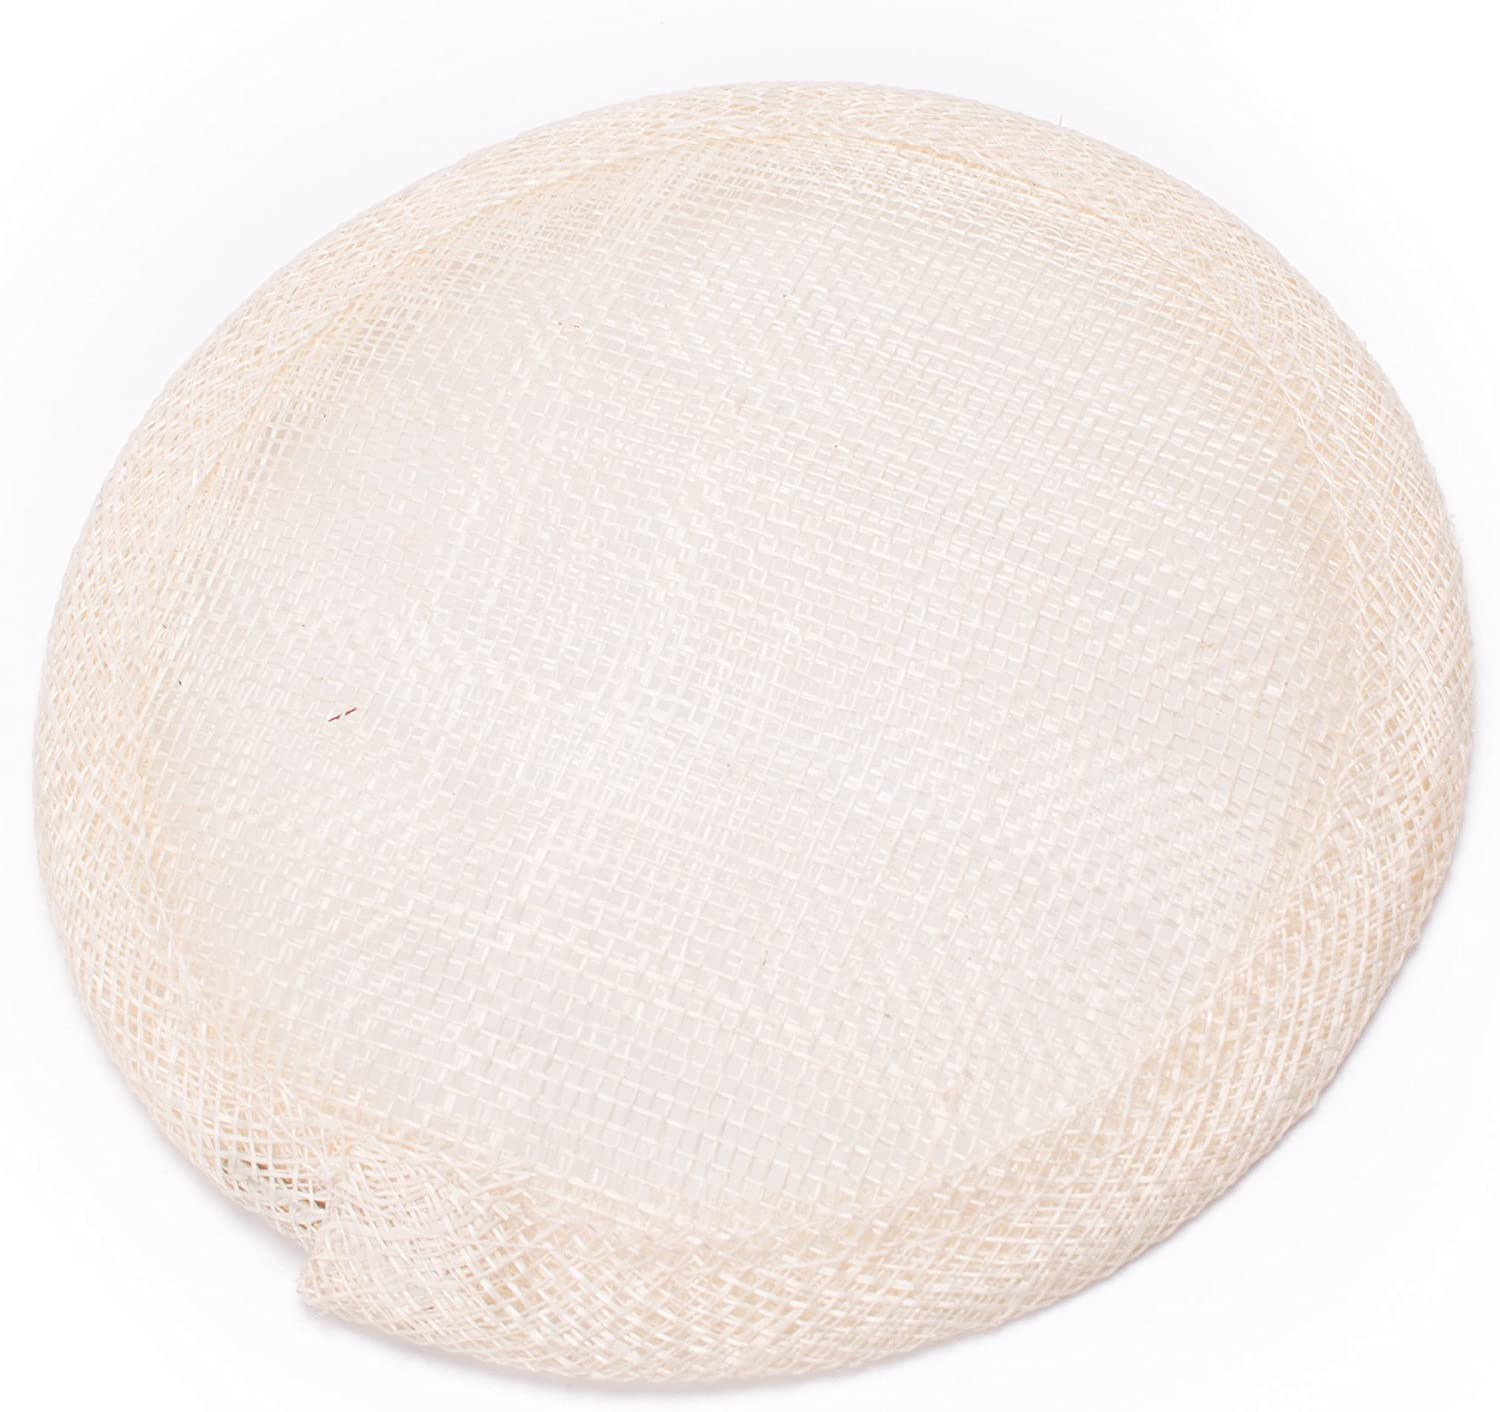 """Lawliet 4.7"""" Round Sinamay Hat Fascinator Base Millinery Craft Making Material B067"""